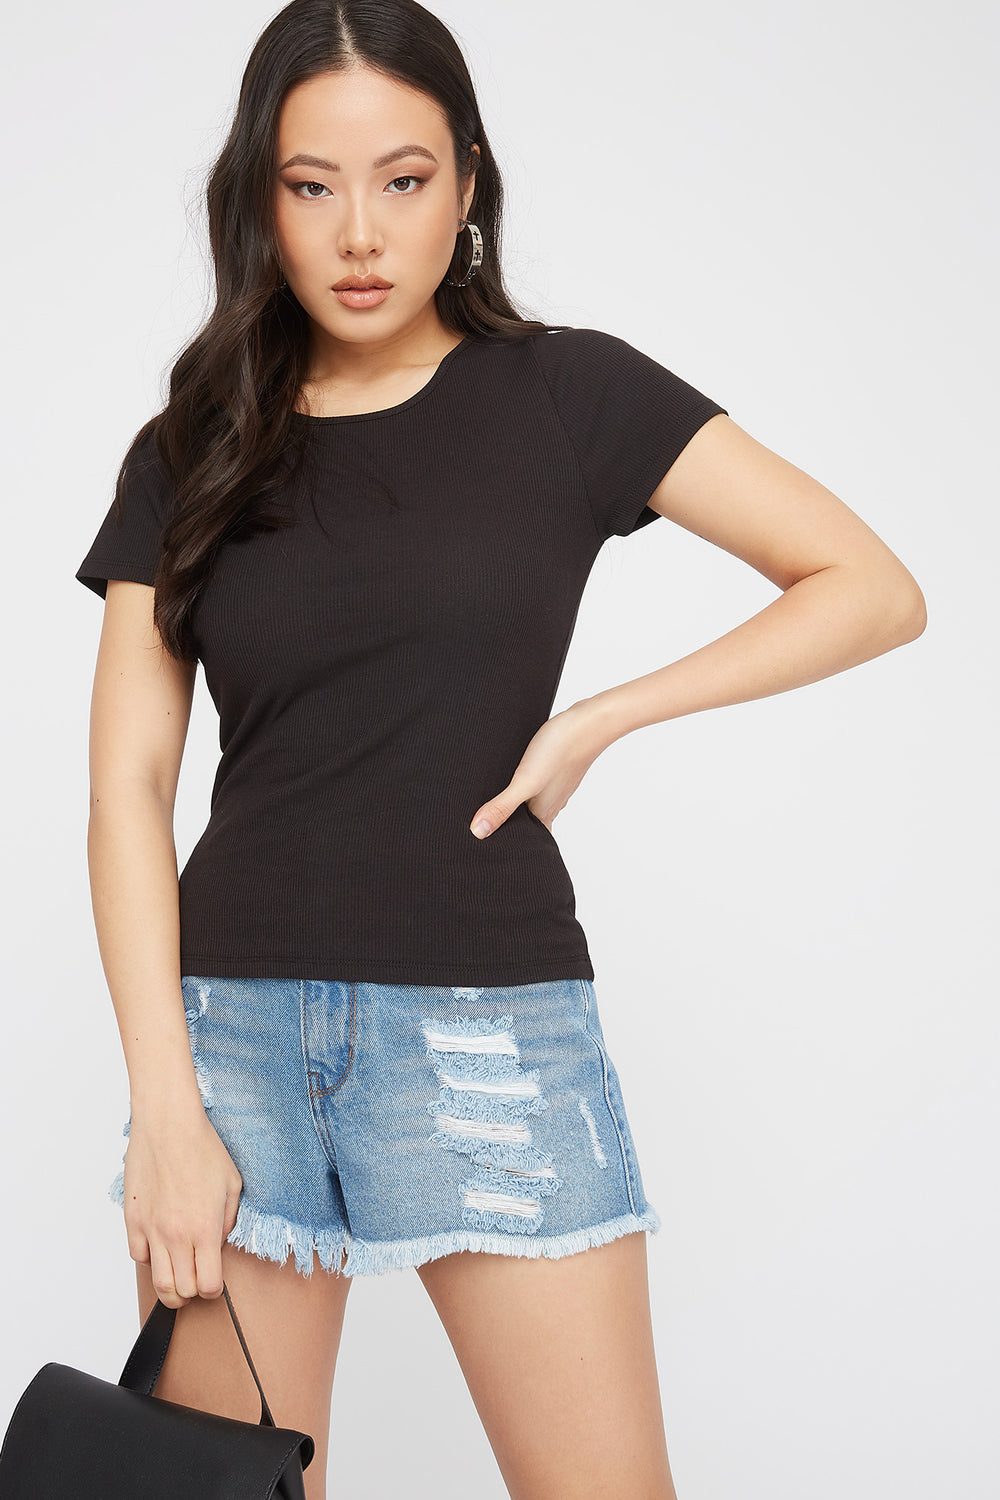 Ribbed Crochet Lace-Up Back T-Shirt Black